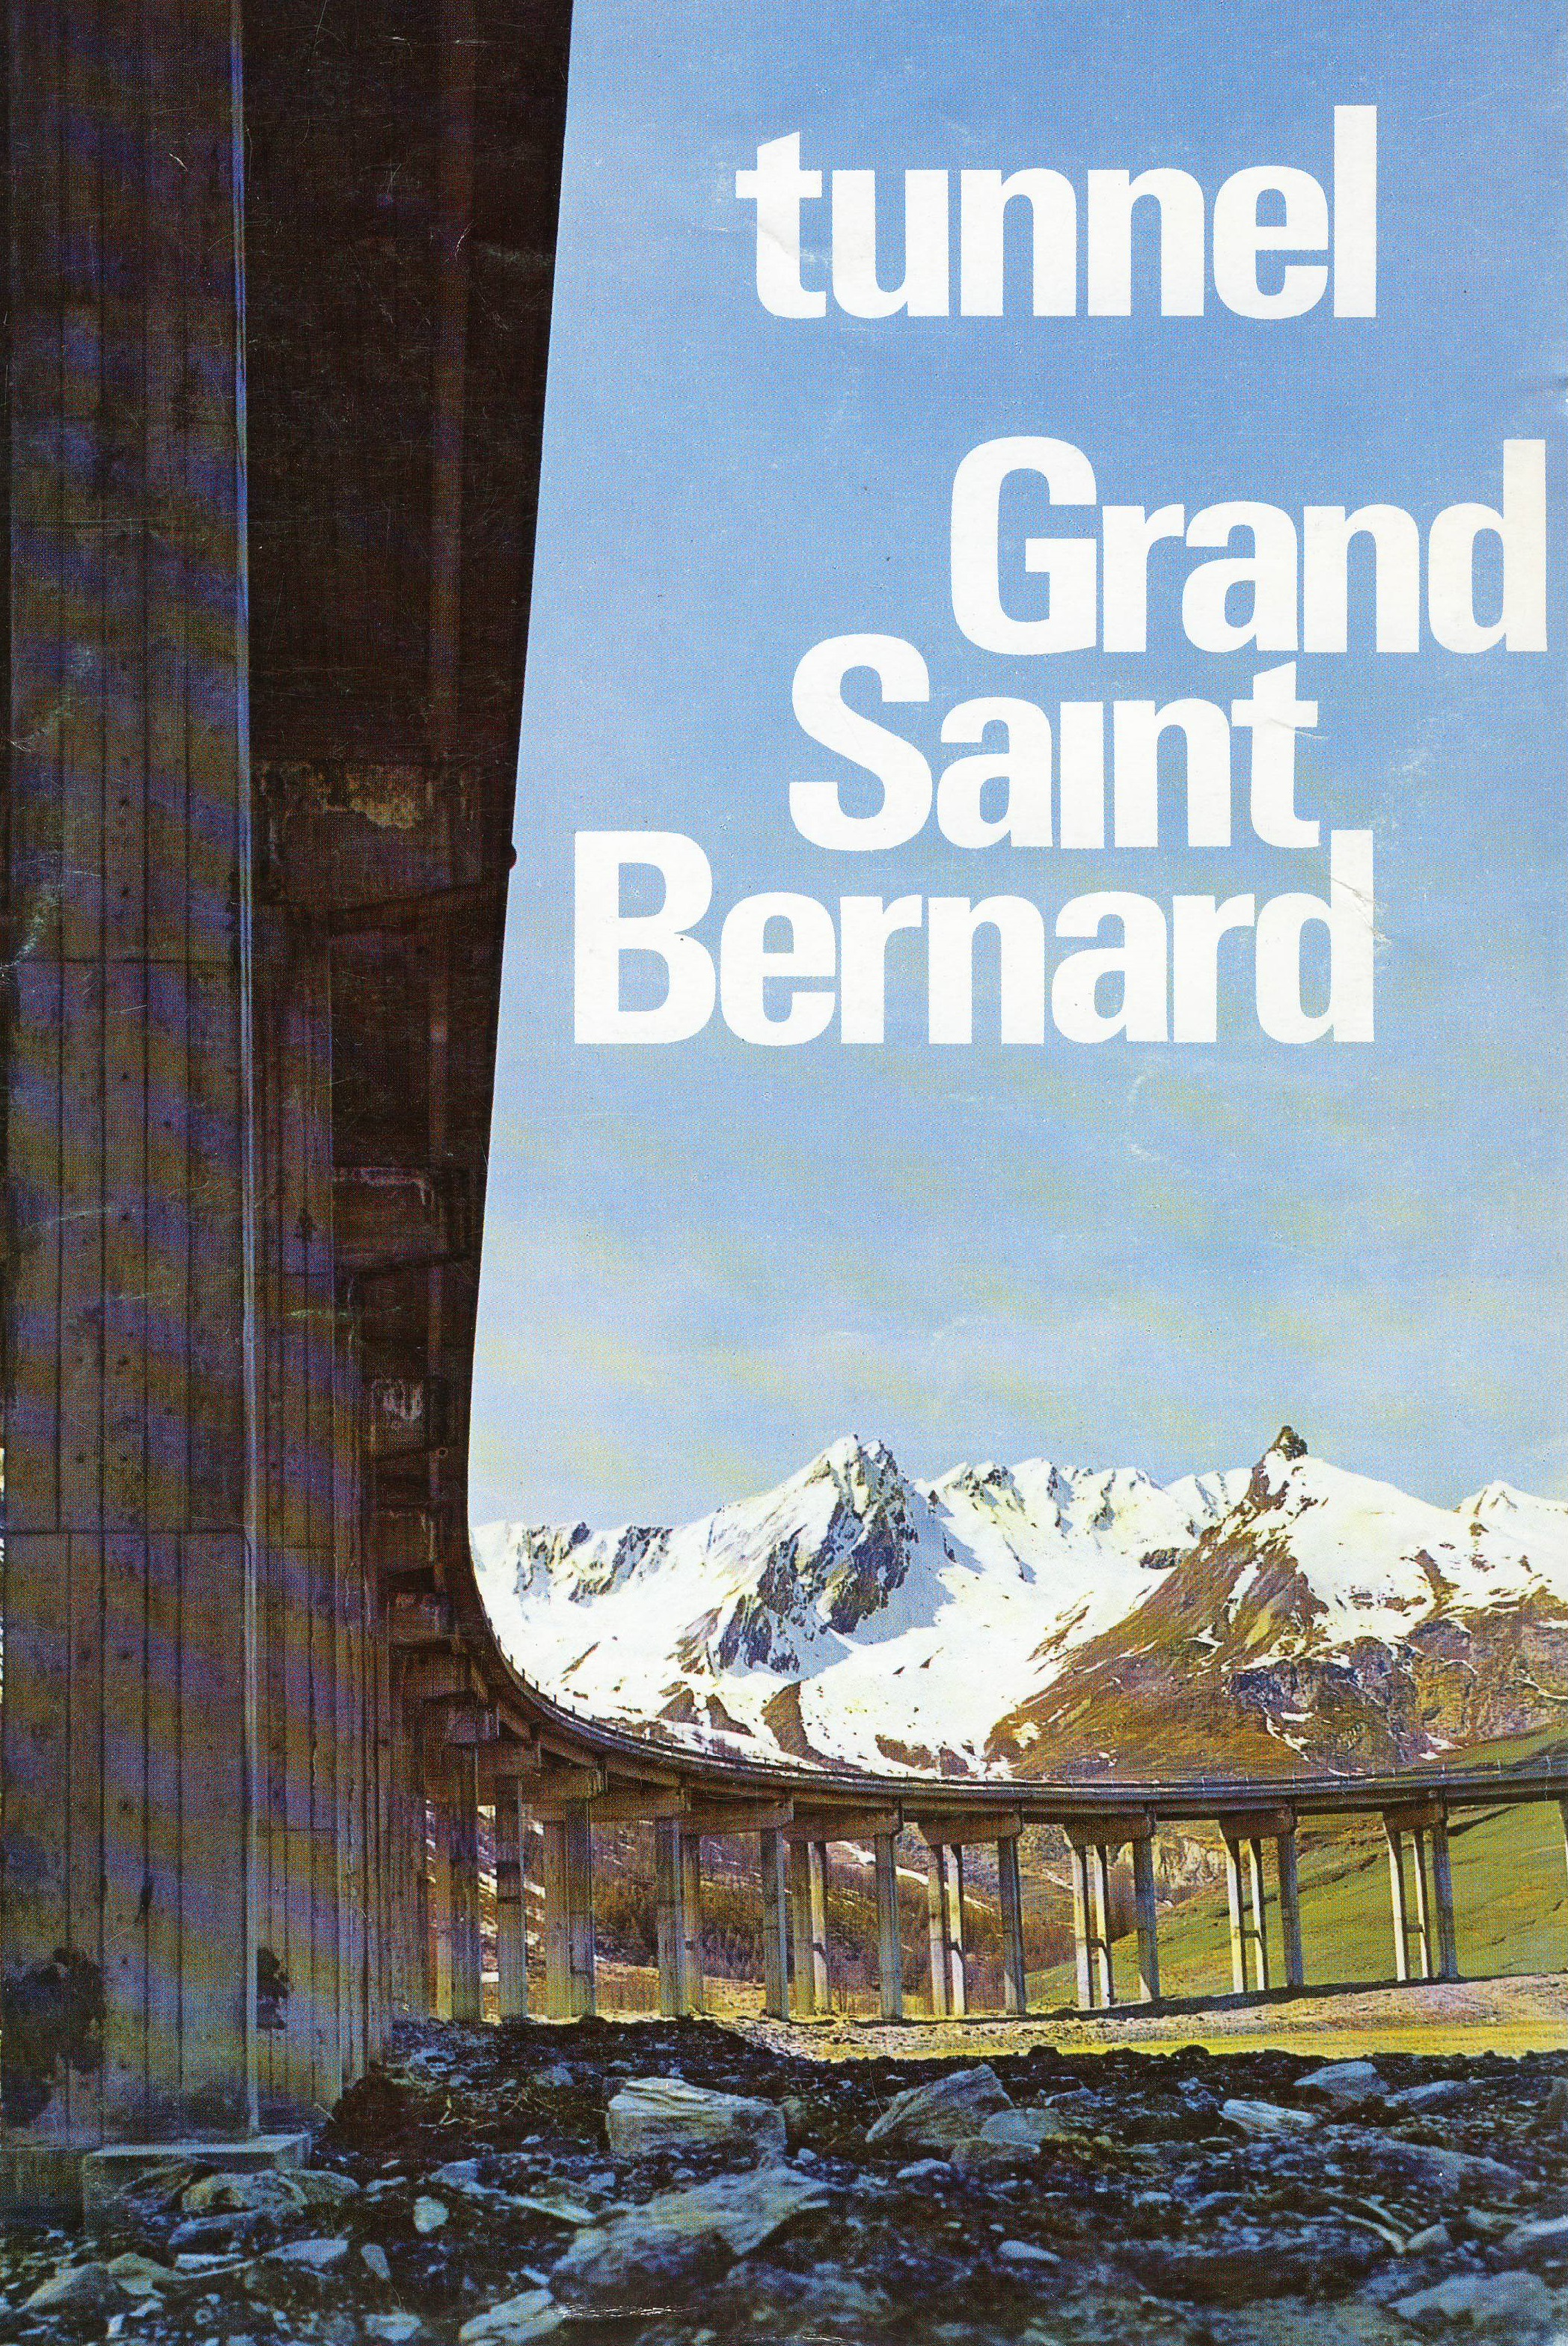 Tunnel Grand Saint Bernard